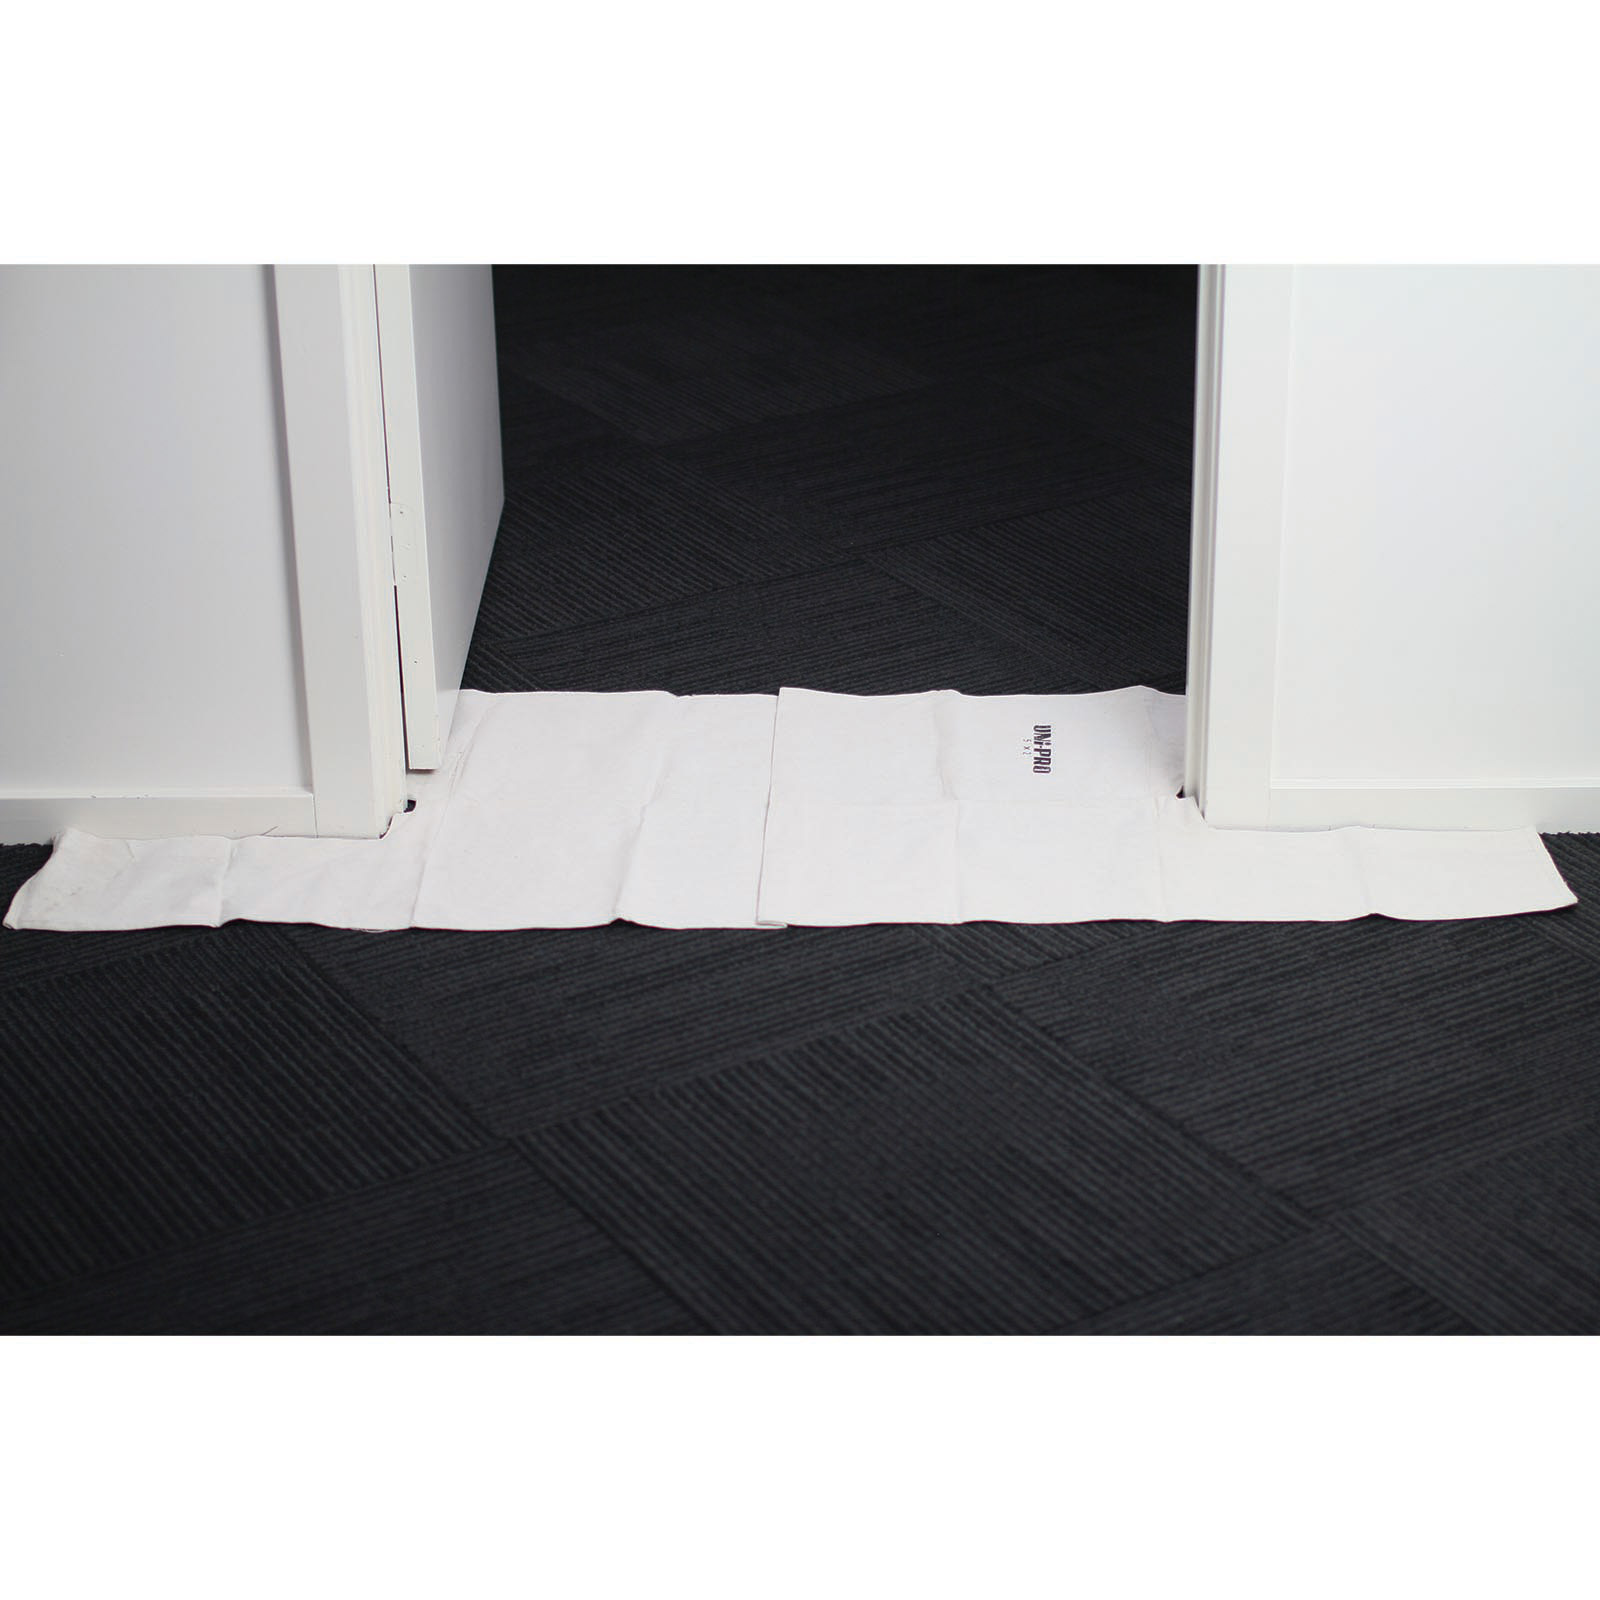 UNi-PRO Canvas Door Frame Dropsheet